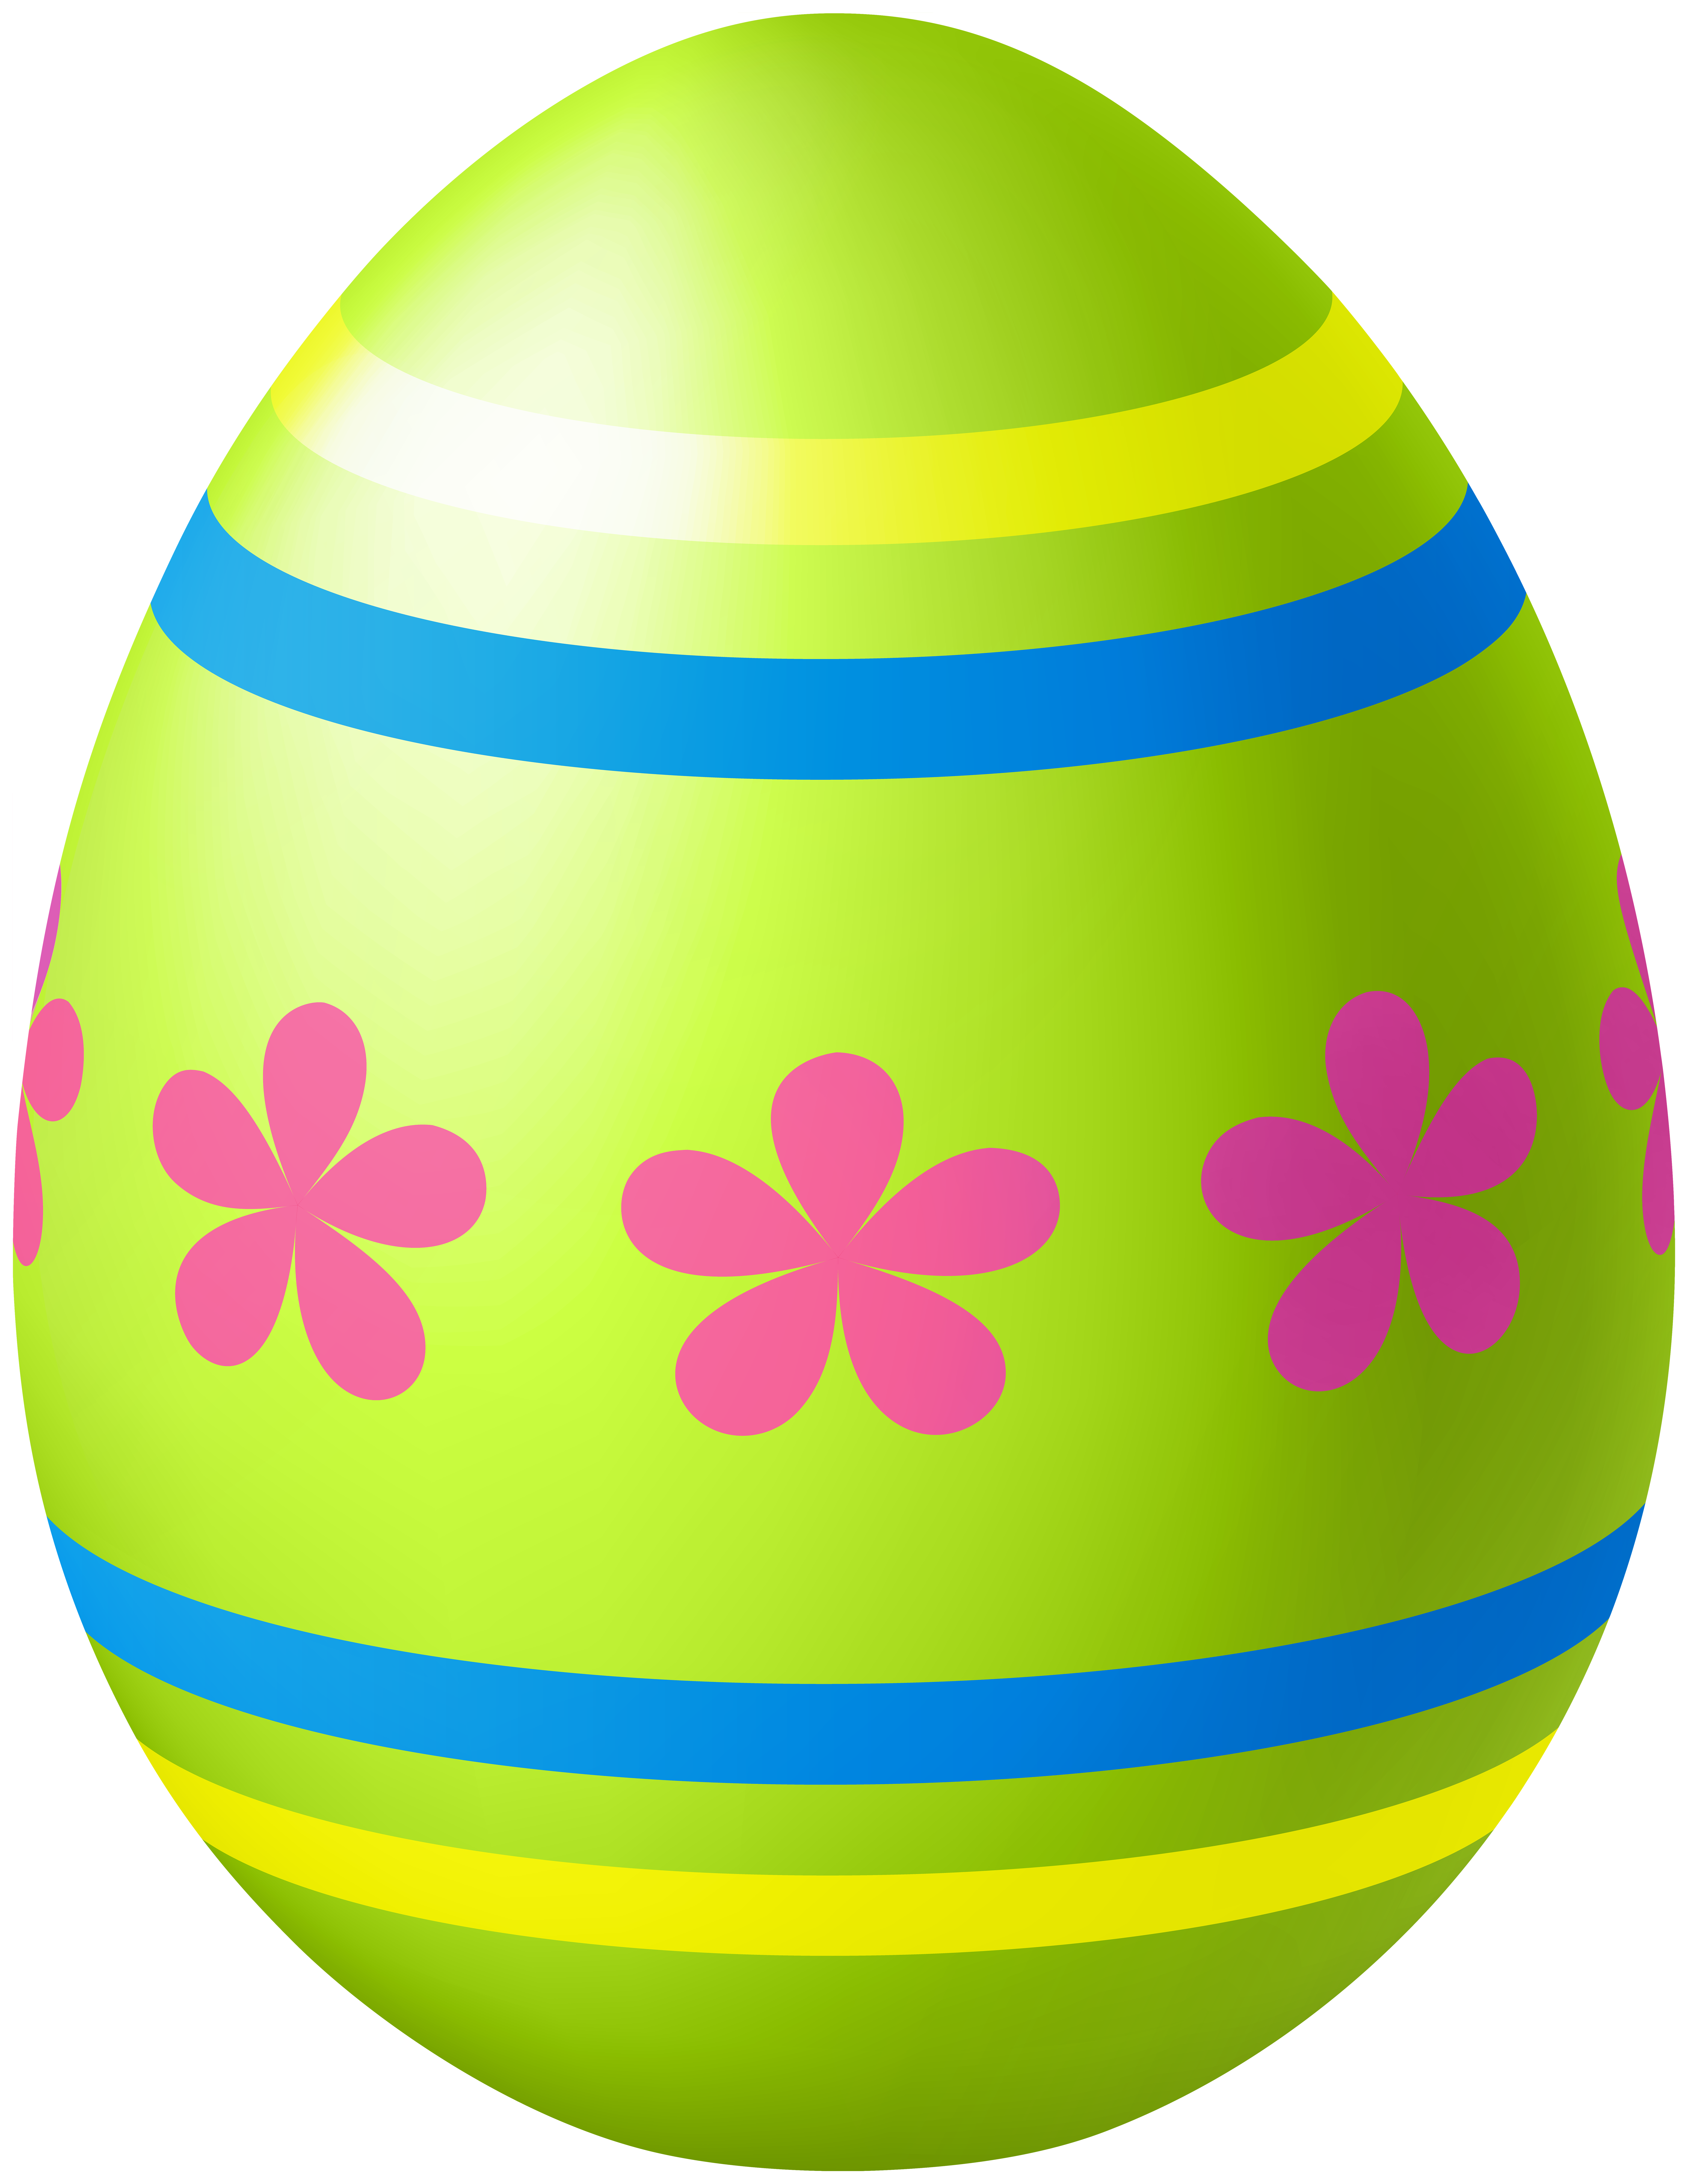 Green_Easter_Egg_PNG_Clipart.png